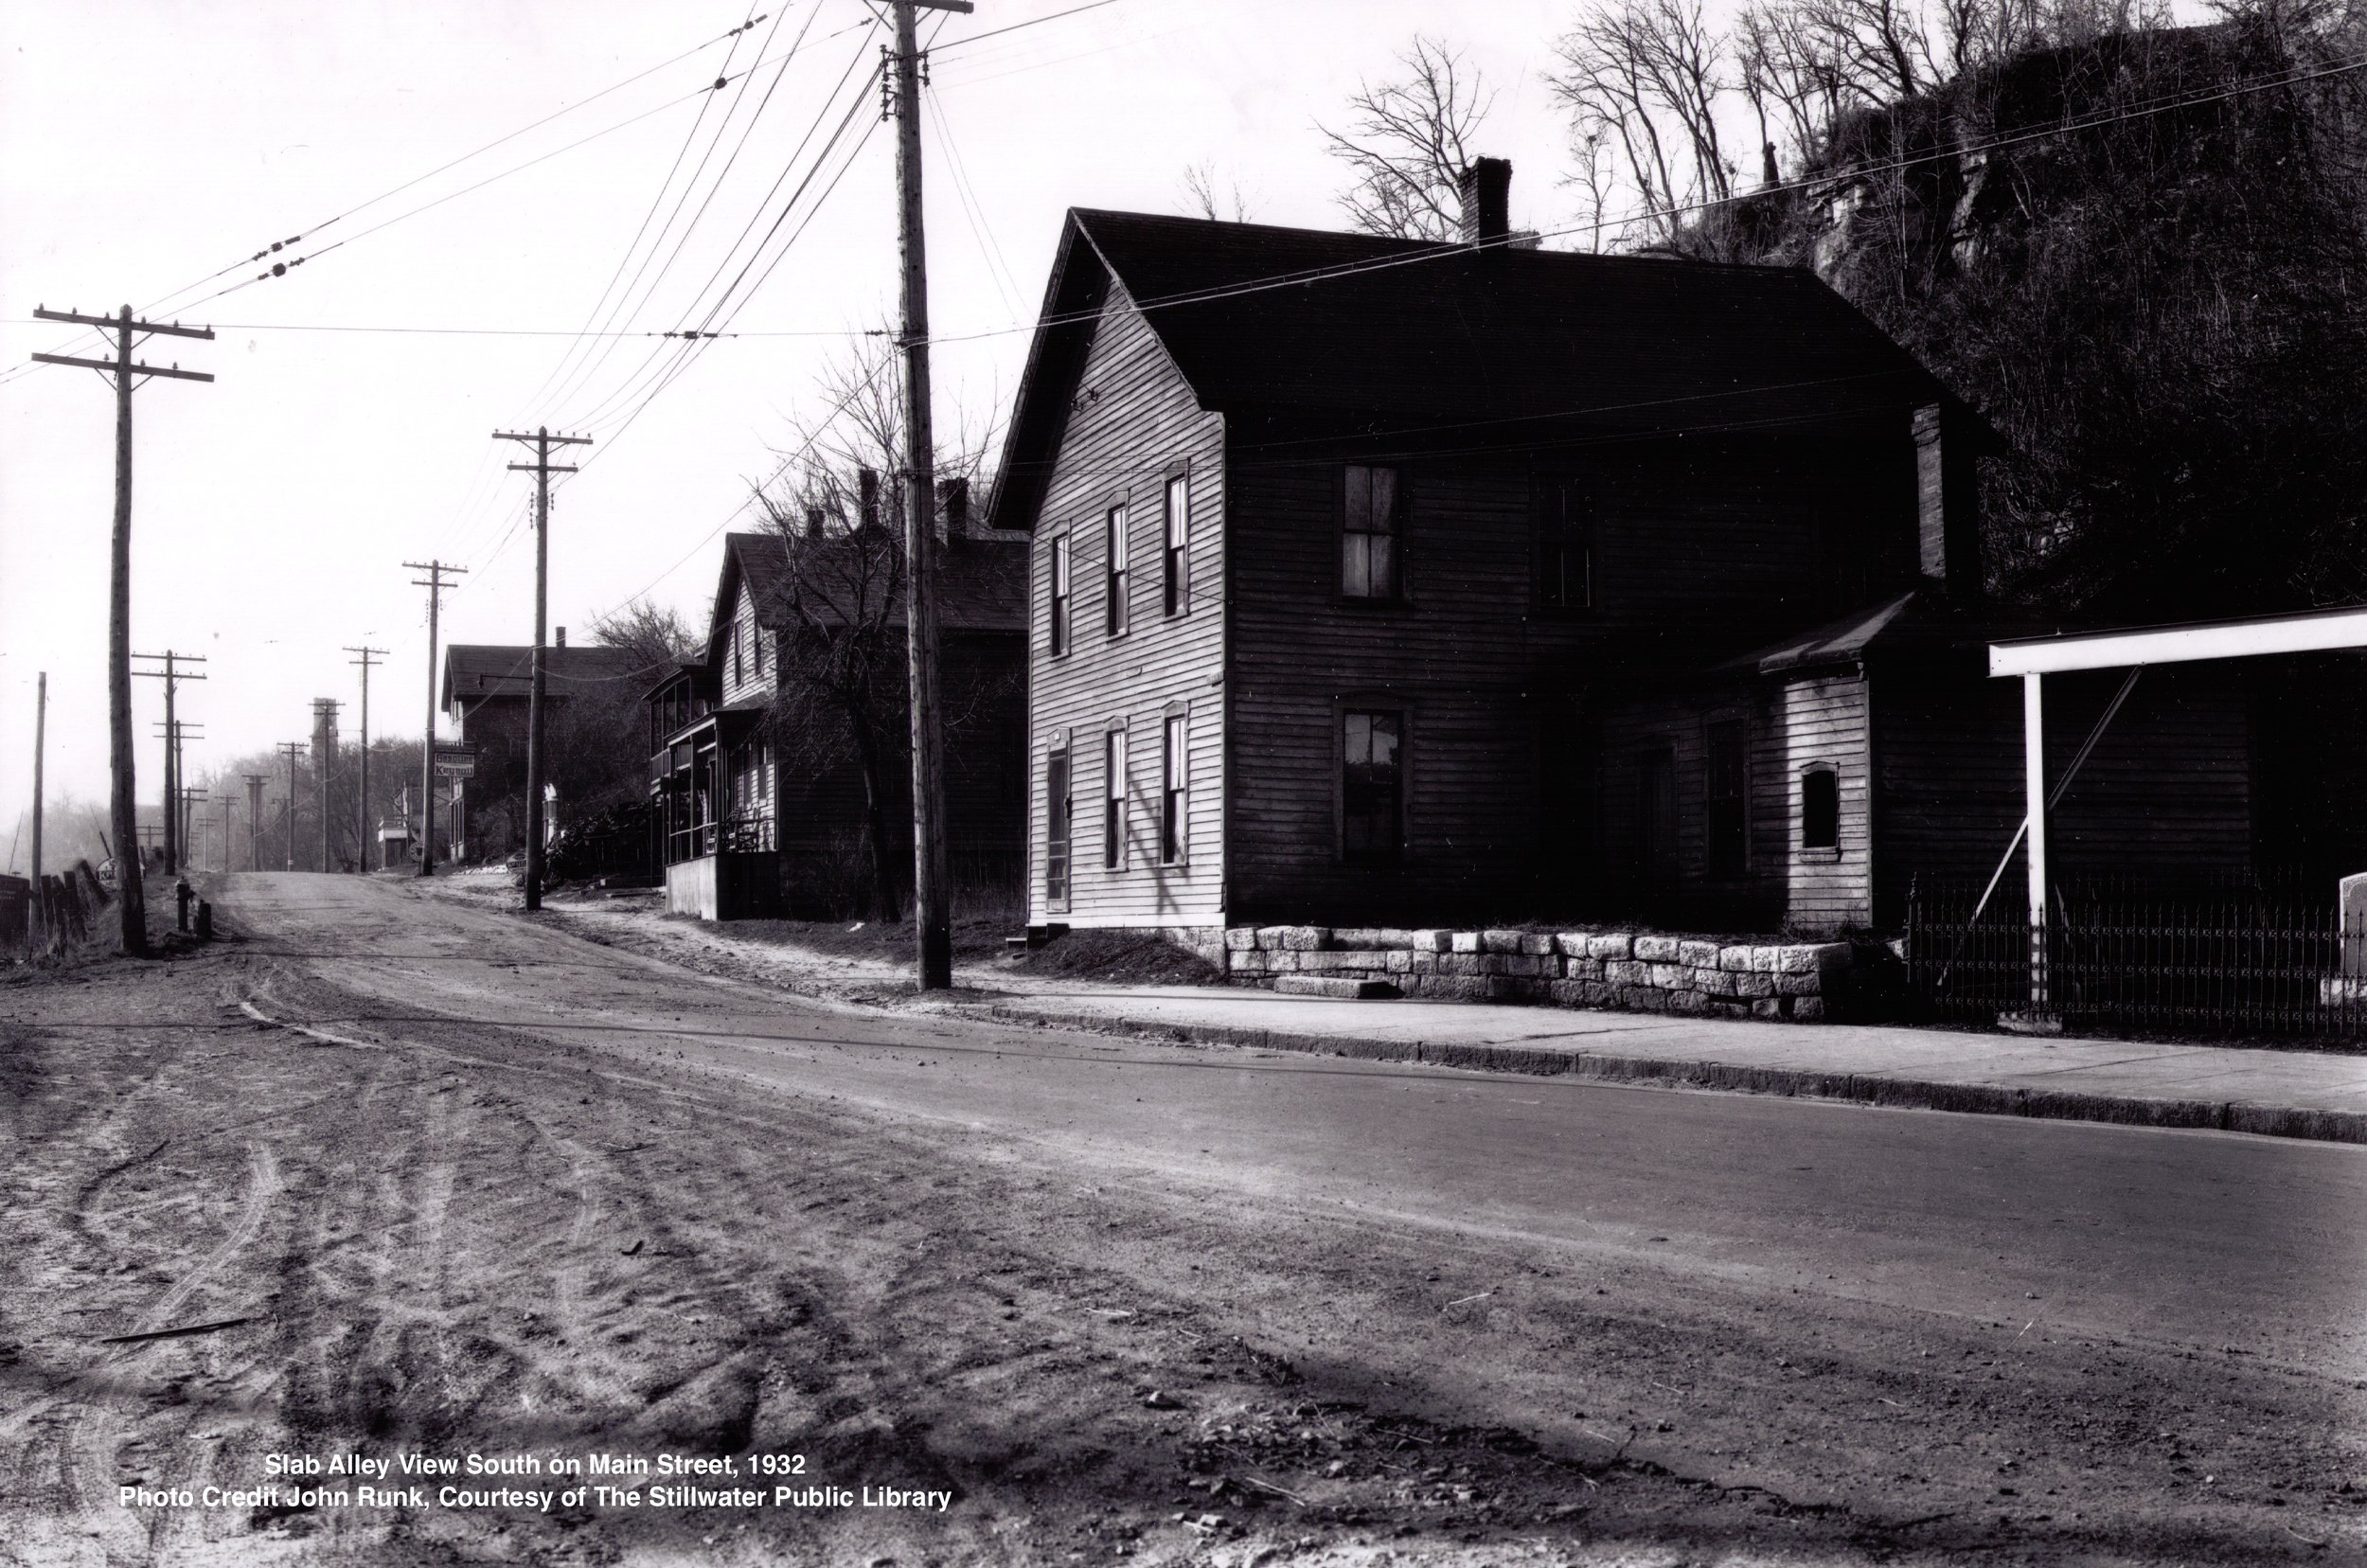 This is a view to the south of Slab Alley. The year was 1932. There was a lot of activity in Slab Alley at various times ranging from the Hersey Bean Lumber Mill operation to the railroad movement. In earlier years, there also Was a brewery just south of this location.